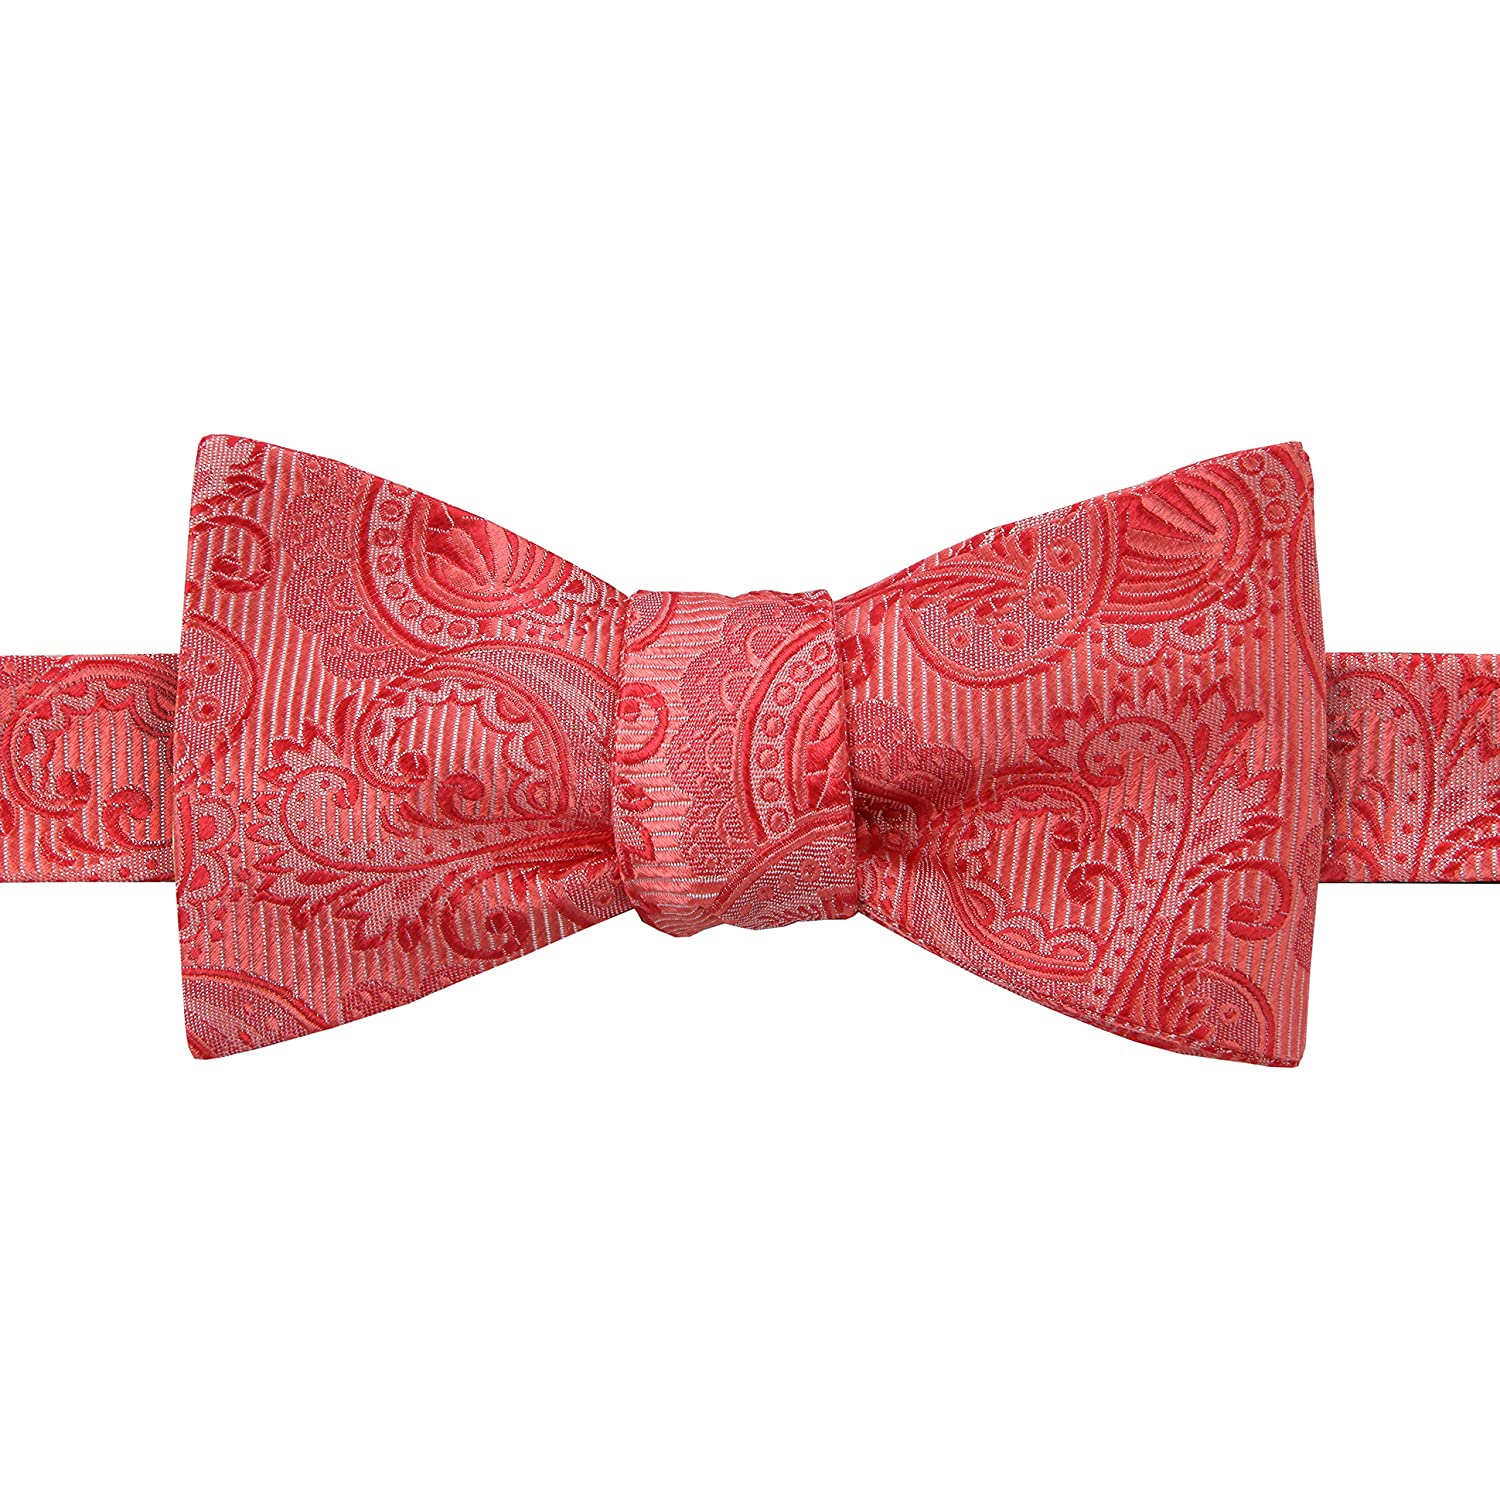 Coral Paisley Pink Wedding Collection Bow Tie 100% Silk, Self Tie, Ideal for Groomsmen PC-BT-SILK-7